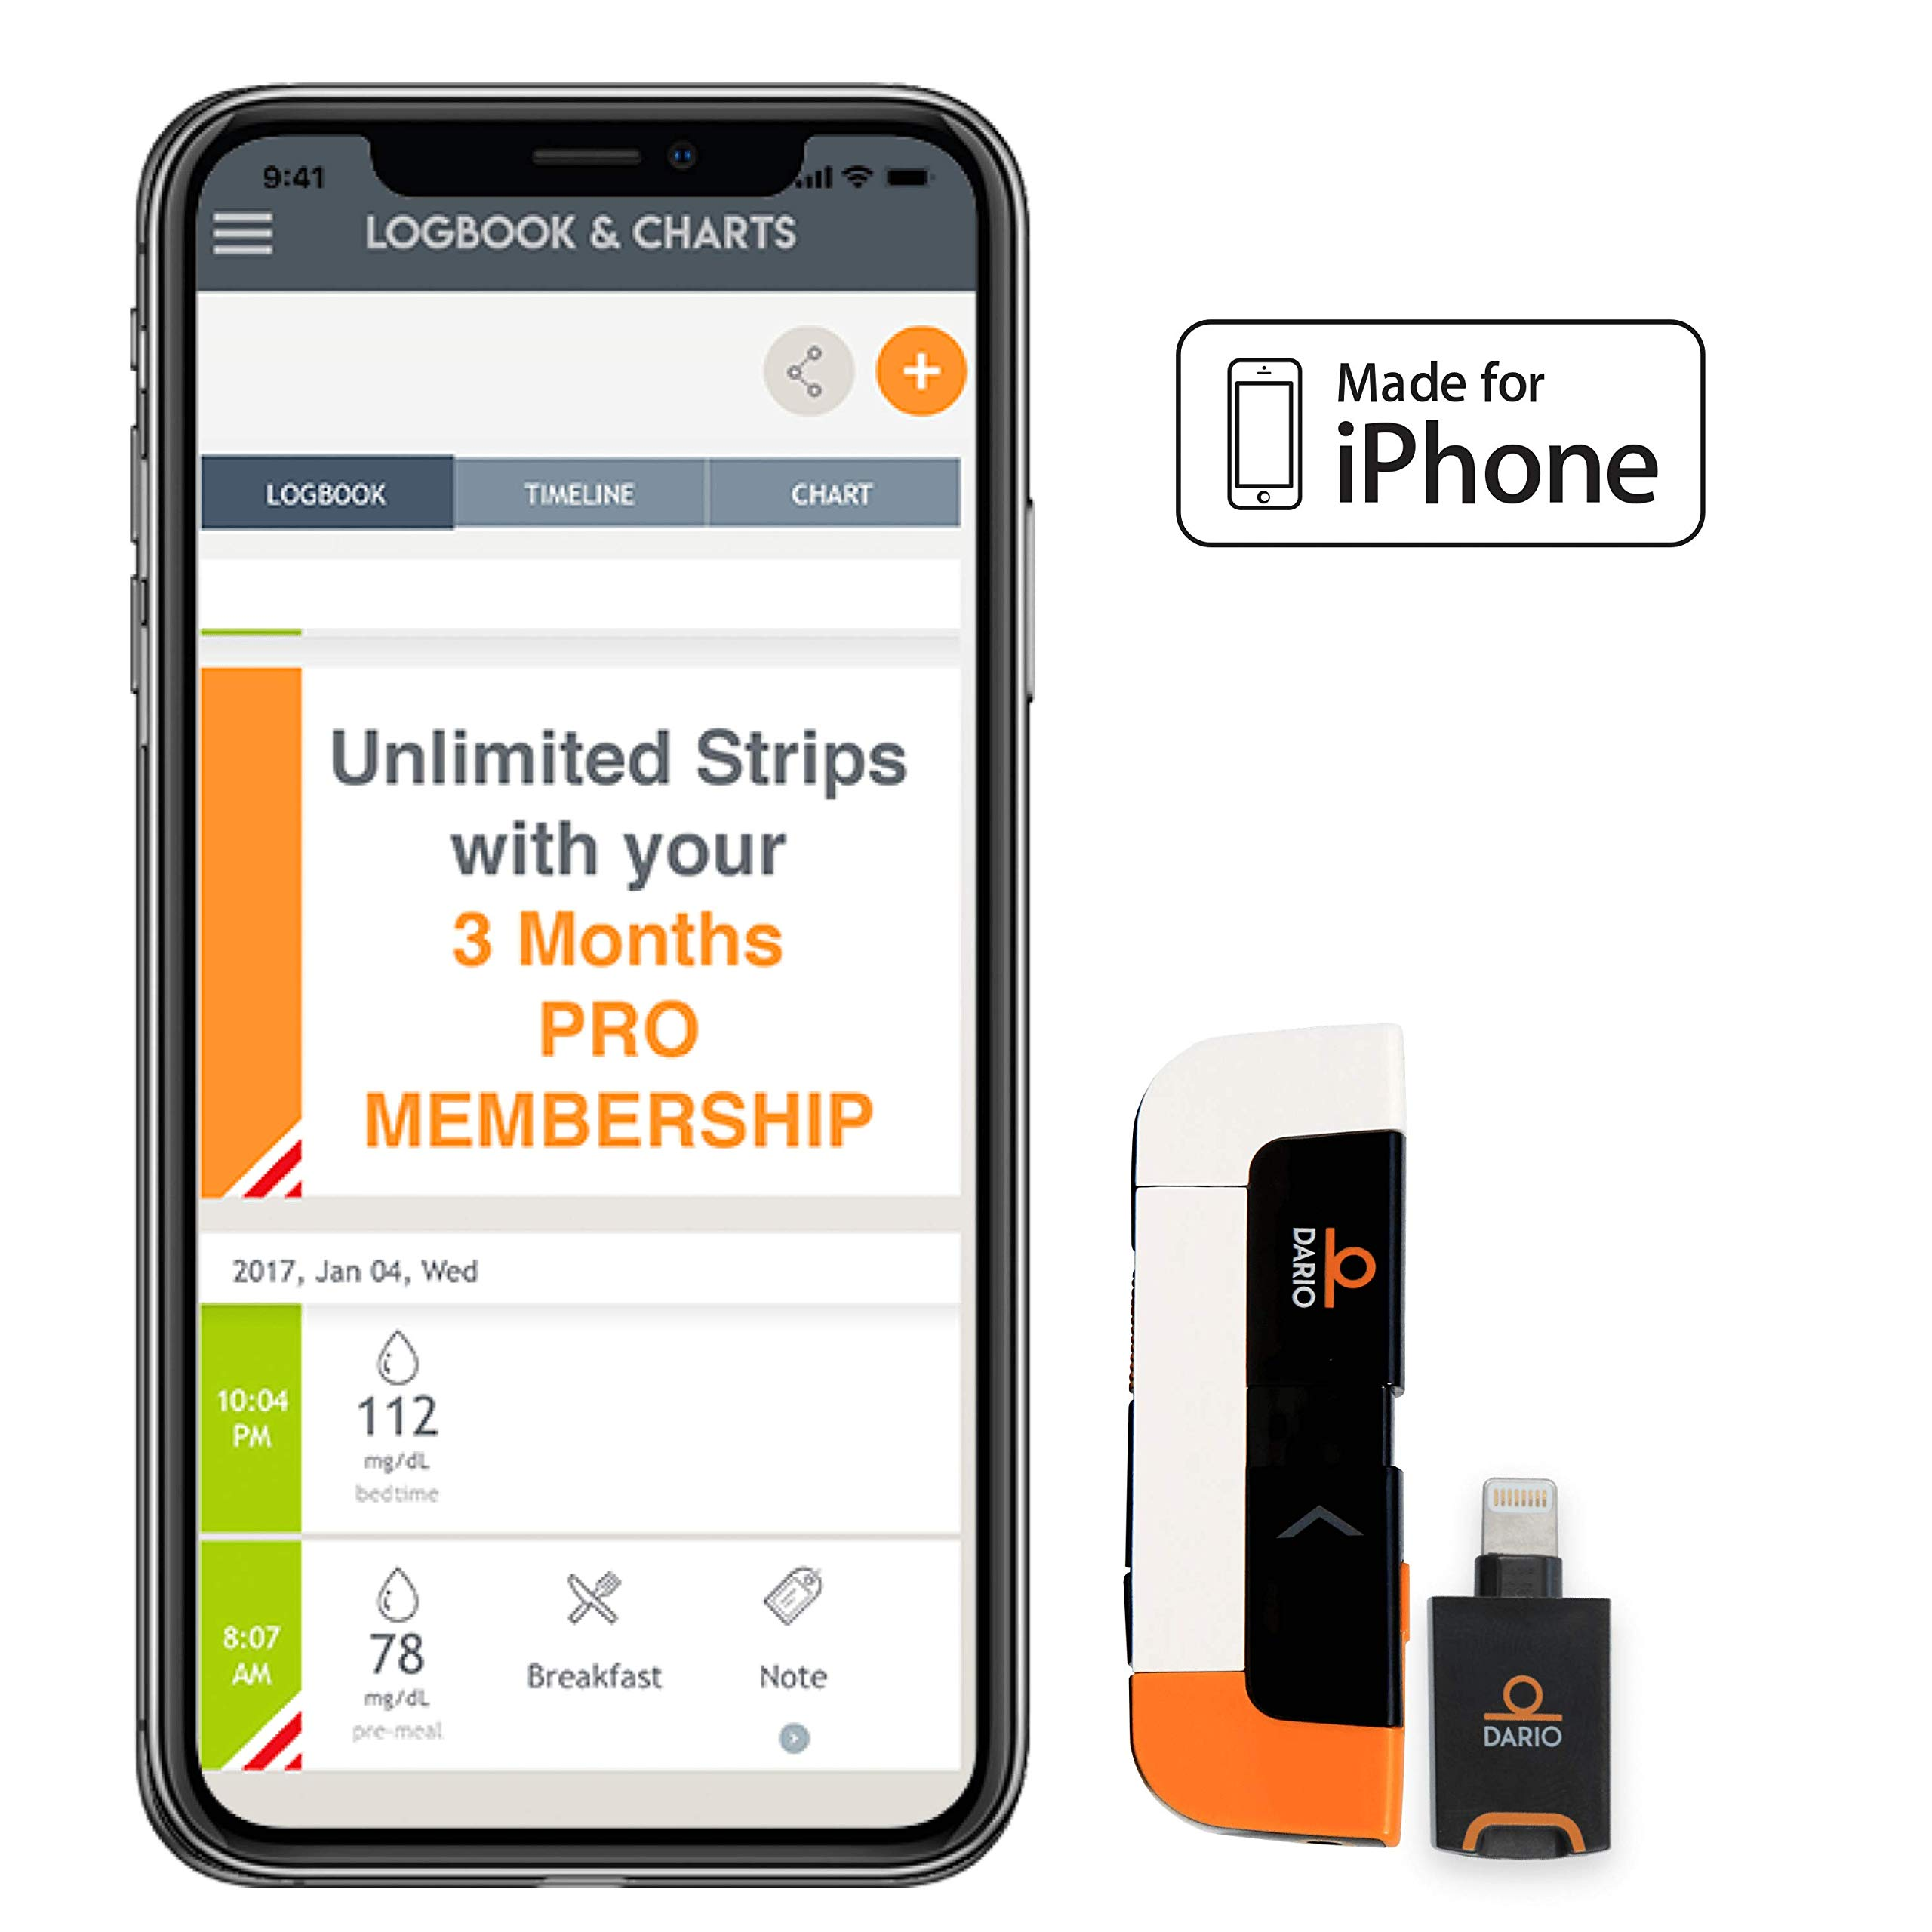 Dario LC Blood Glucose Monitoring System for iPhone with 3-Month Pro Membership. Get The All-in-One Meter, Unlimited Test Strips, Personal Weekly Reports, and Your Own Personal Dario Specialist